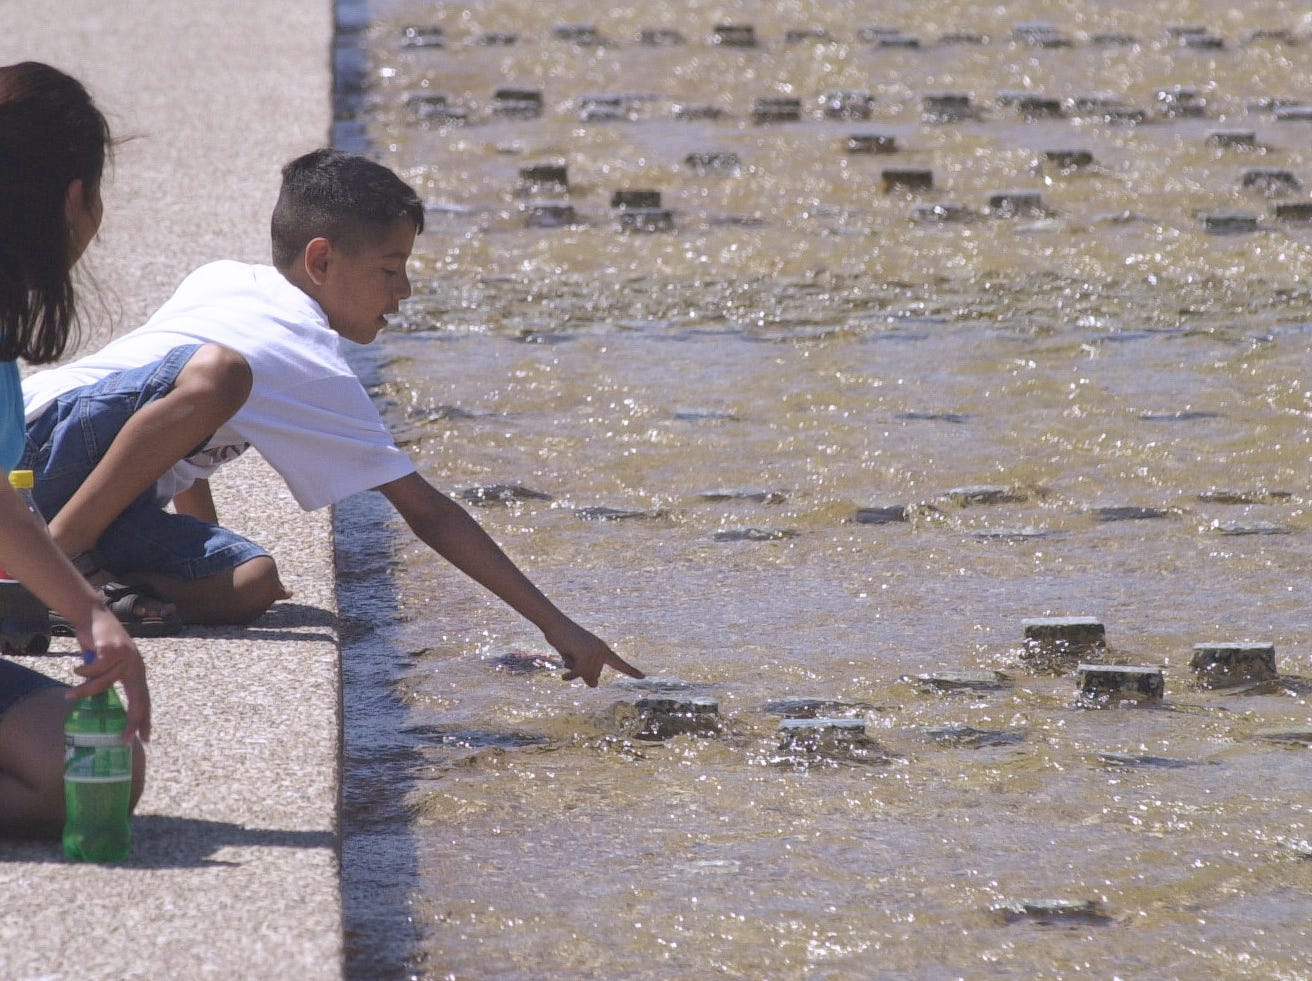 Dolores Gomez (left), from Sinton, decided to take her son, Javier Gomez, 7, to see the Corpus Christi Watergarden in March 2002 during his spring break.